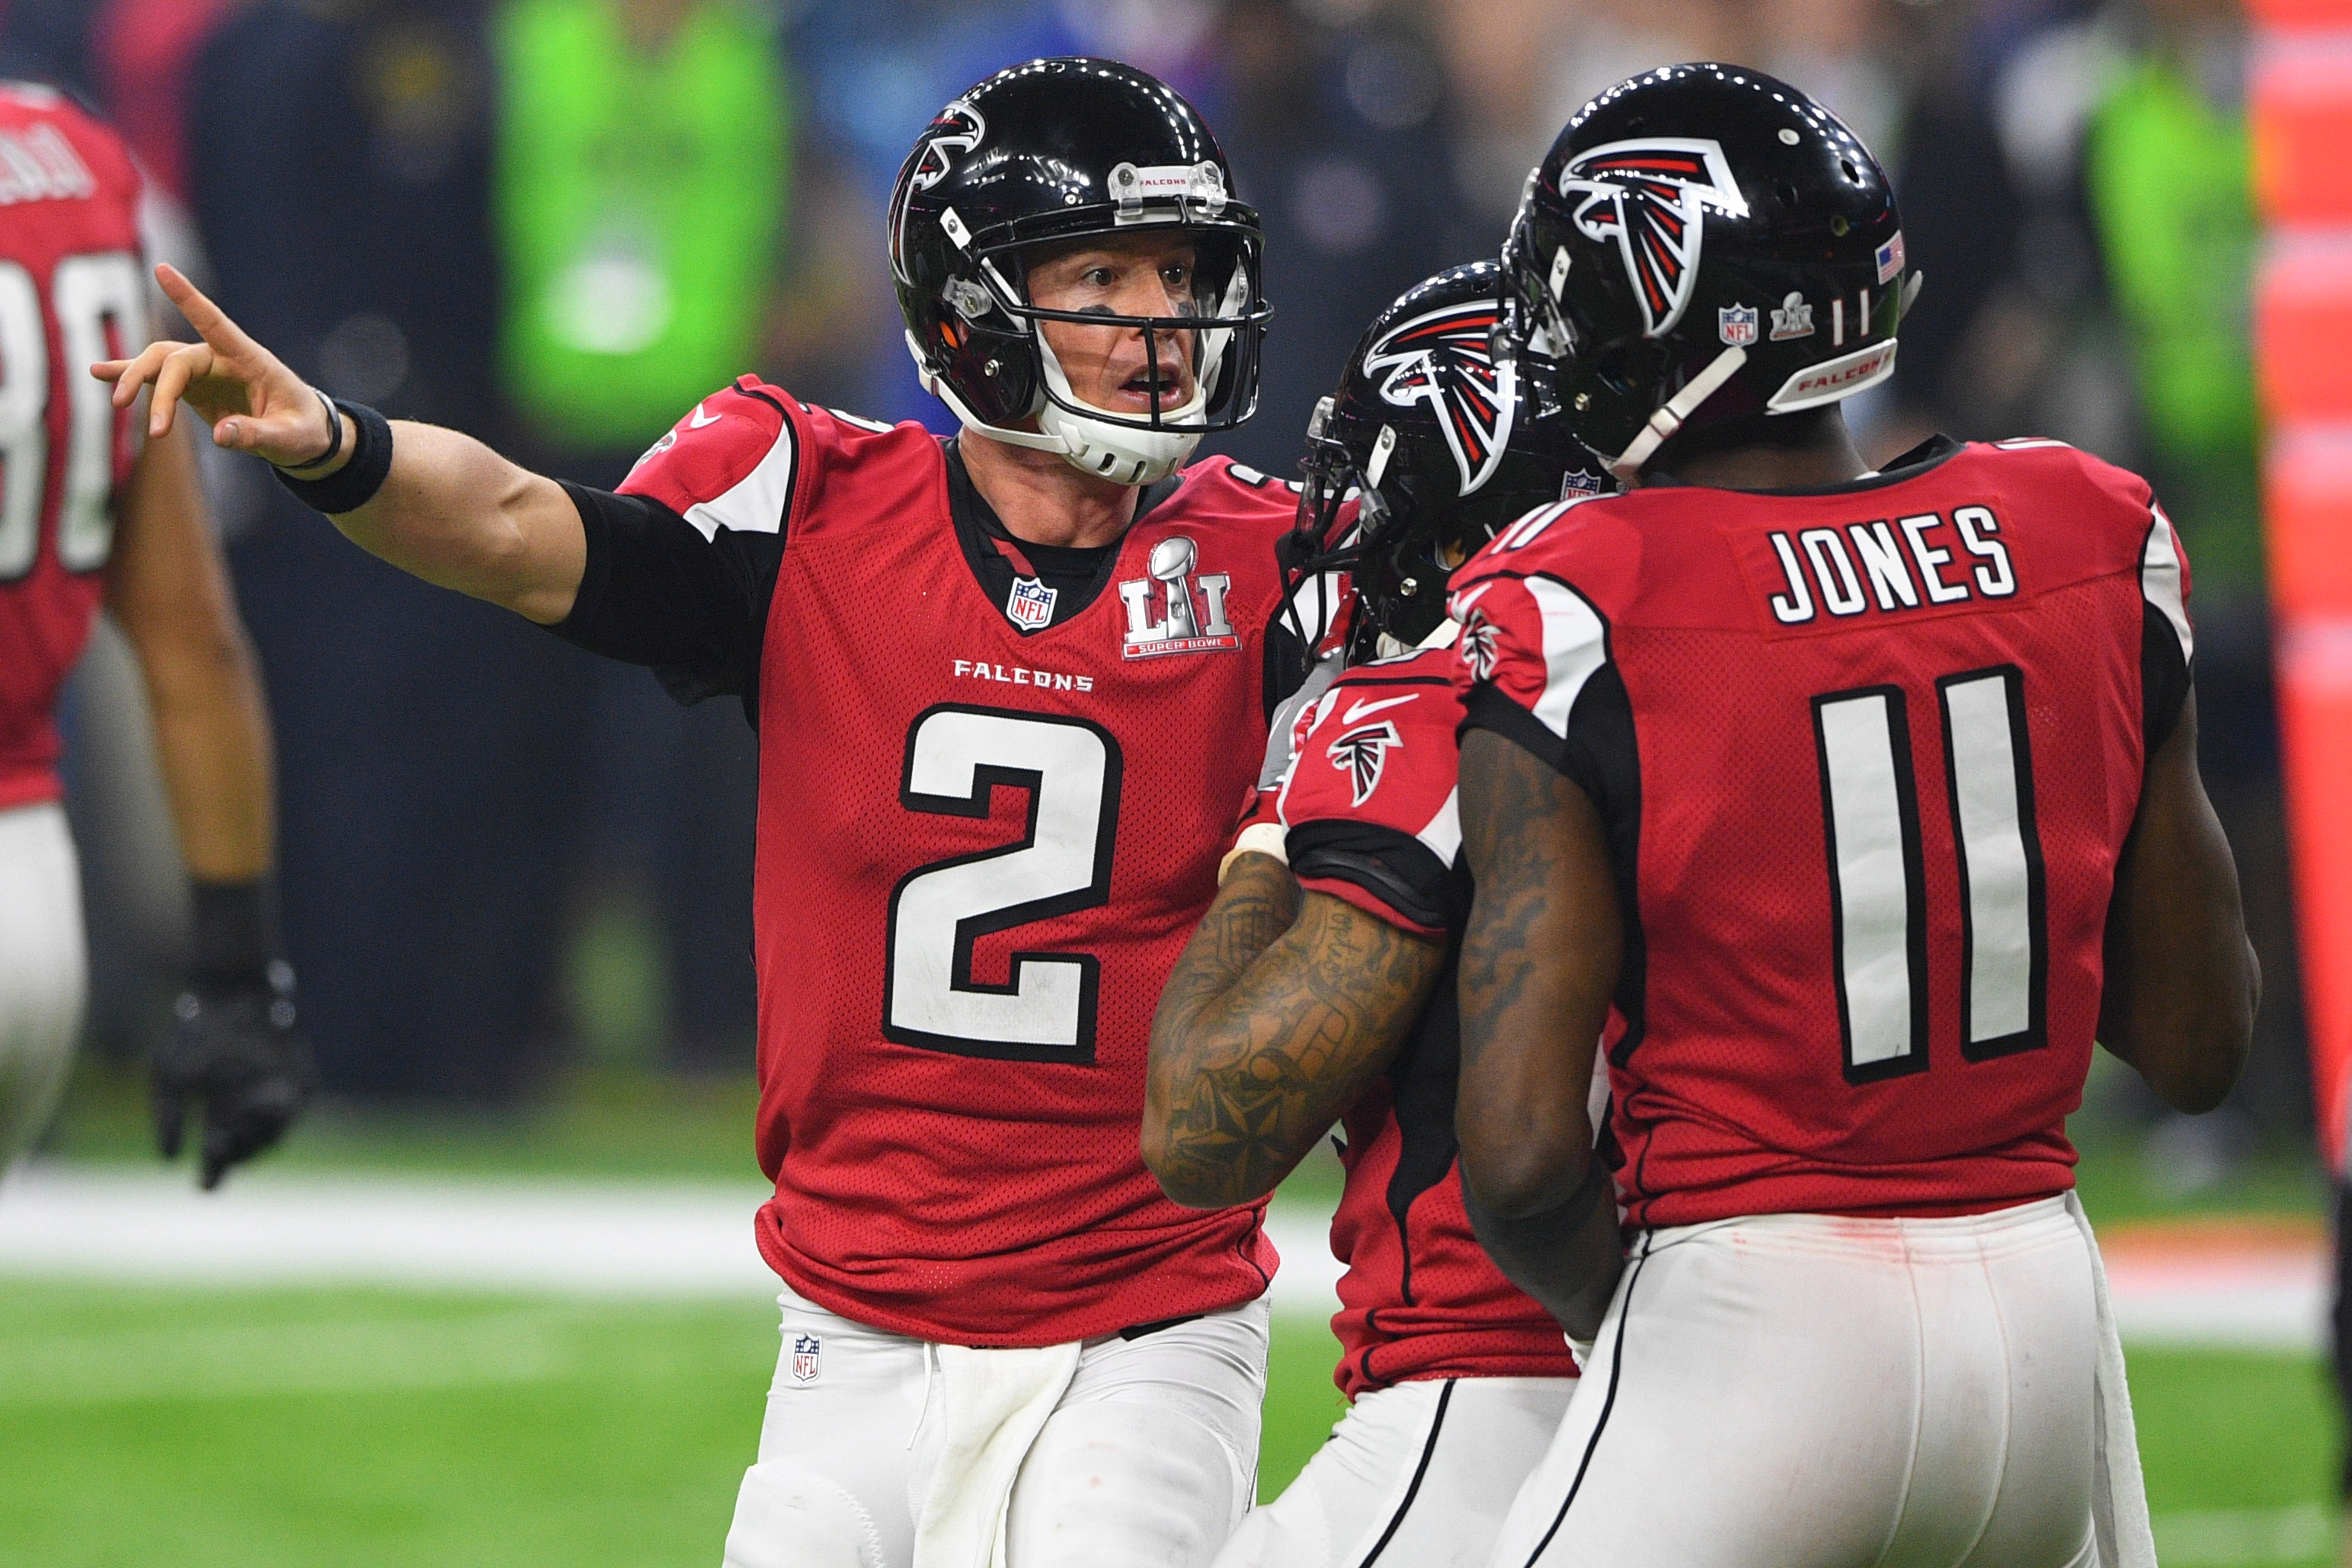 Feb 5, 2017; Houston, TX, USA; Atlanta Falcons quarterback Matt Ryan (2) speaks to wide receiver Julio Jones (11) in the fourth quarter against the New England Patriotsduring Super Bowl LI at NRG Stadium. Mandatory Credit: Bob Donnan-USA TODAY Sports